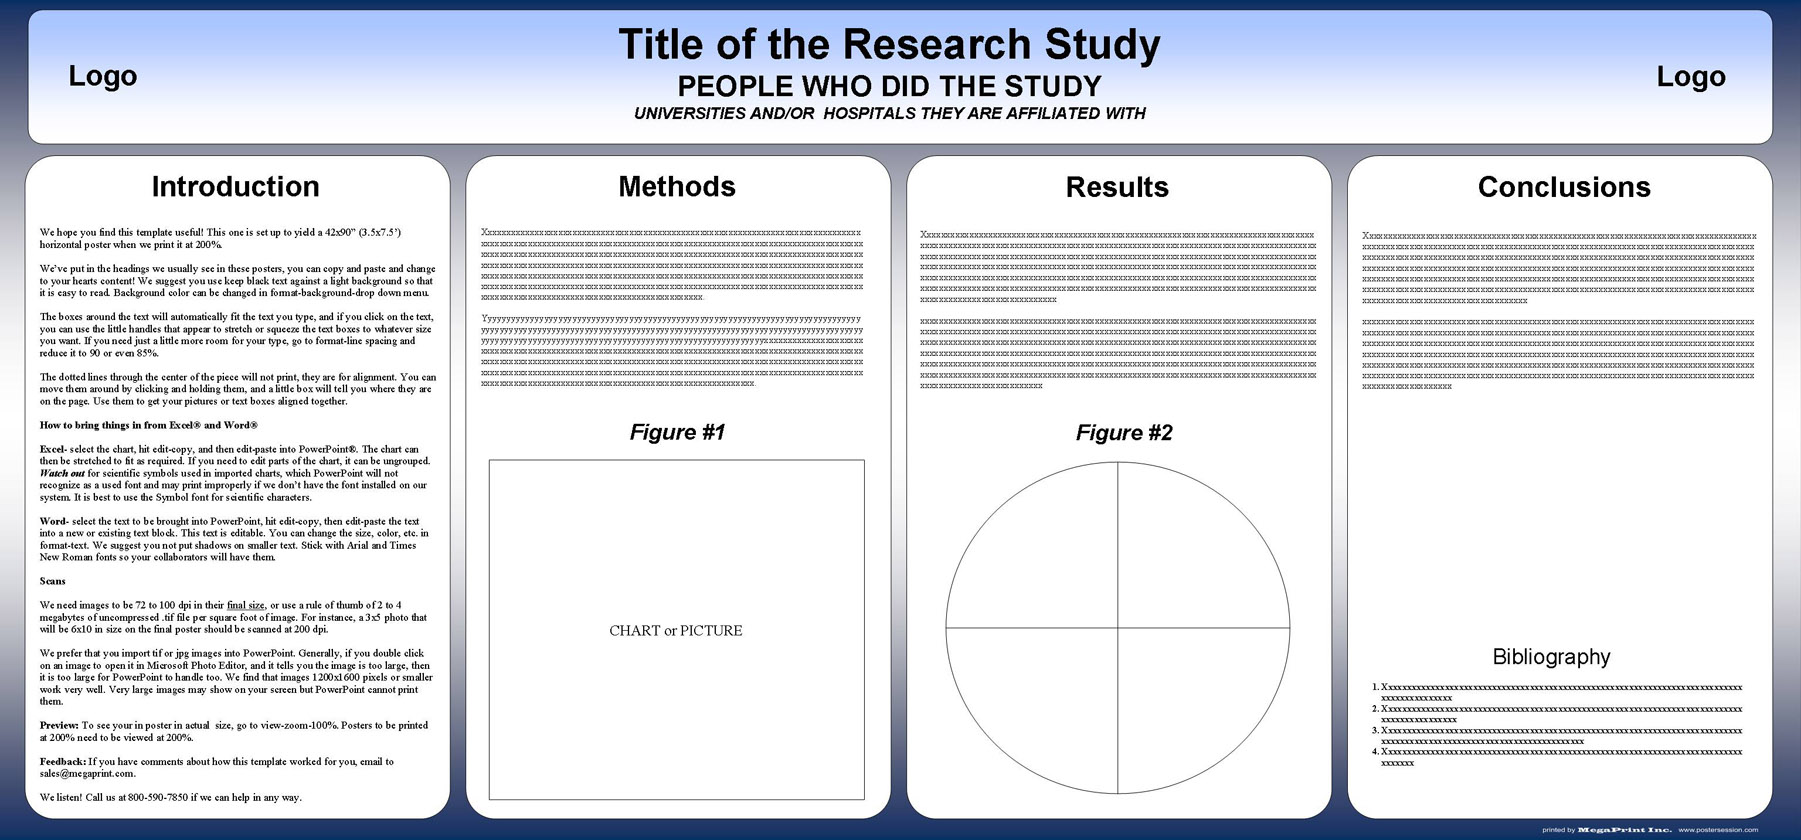 Free powerpoint scientific research poster templates for printing 42x90 academic poster template toneelgroepblik Images